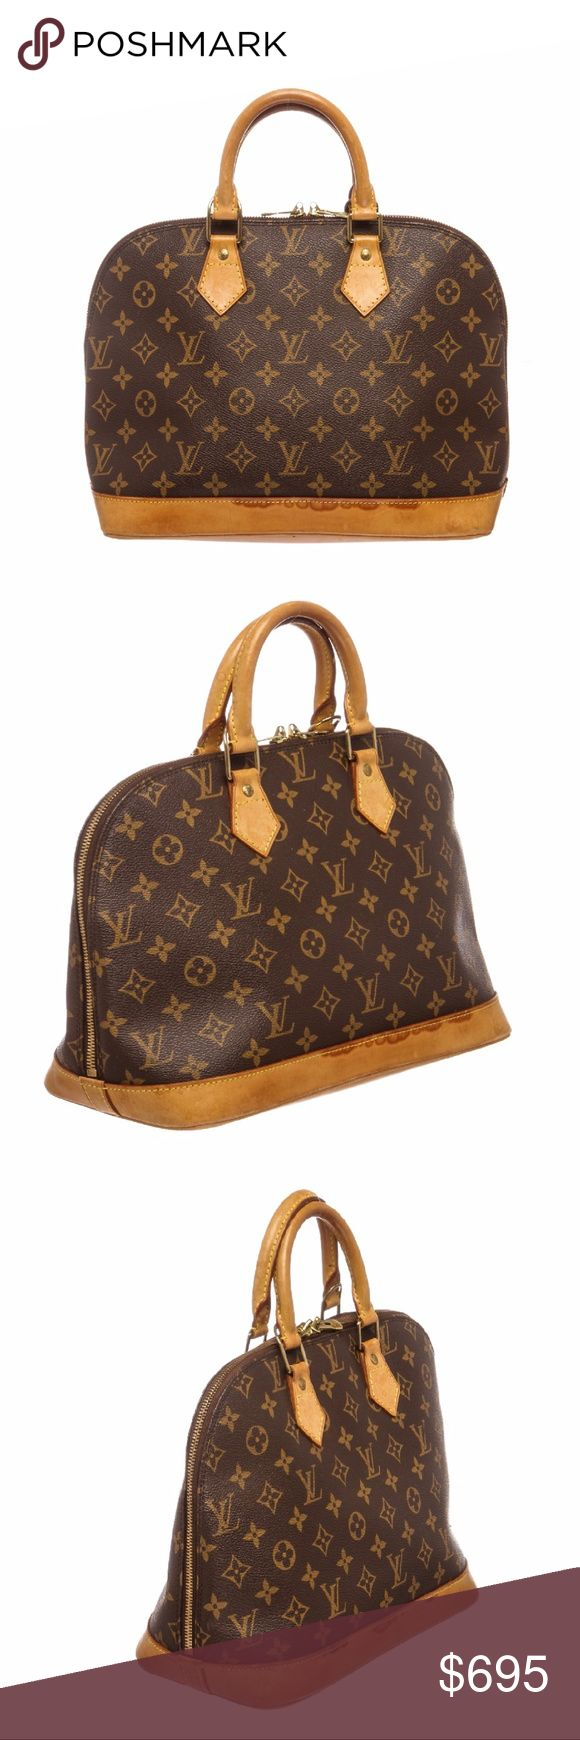 Louis Vuitton Canvas Leather Alma PM Handbag Brown and tan monogram coated canvas Louis Vuitton Alma PM with brass hardware, tan vachetta leather trim, dual rolled top handles, brown canvas lining, single pocket at interior wall and zip closure at top. Shop AUTHENTIC Louis Vuitton handbags at MARQUE SUPPLY COMPANY.   3688MSC Louis Vuitton Bags Satchels